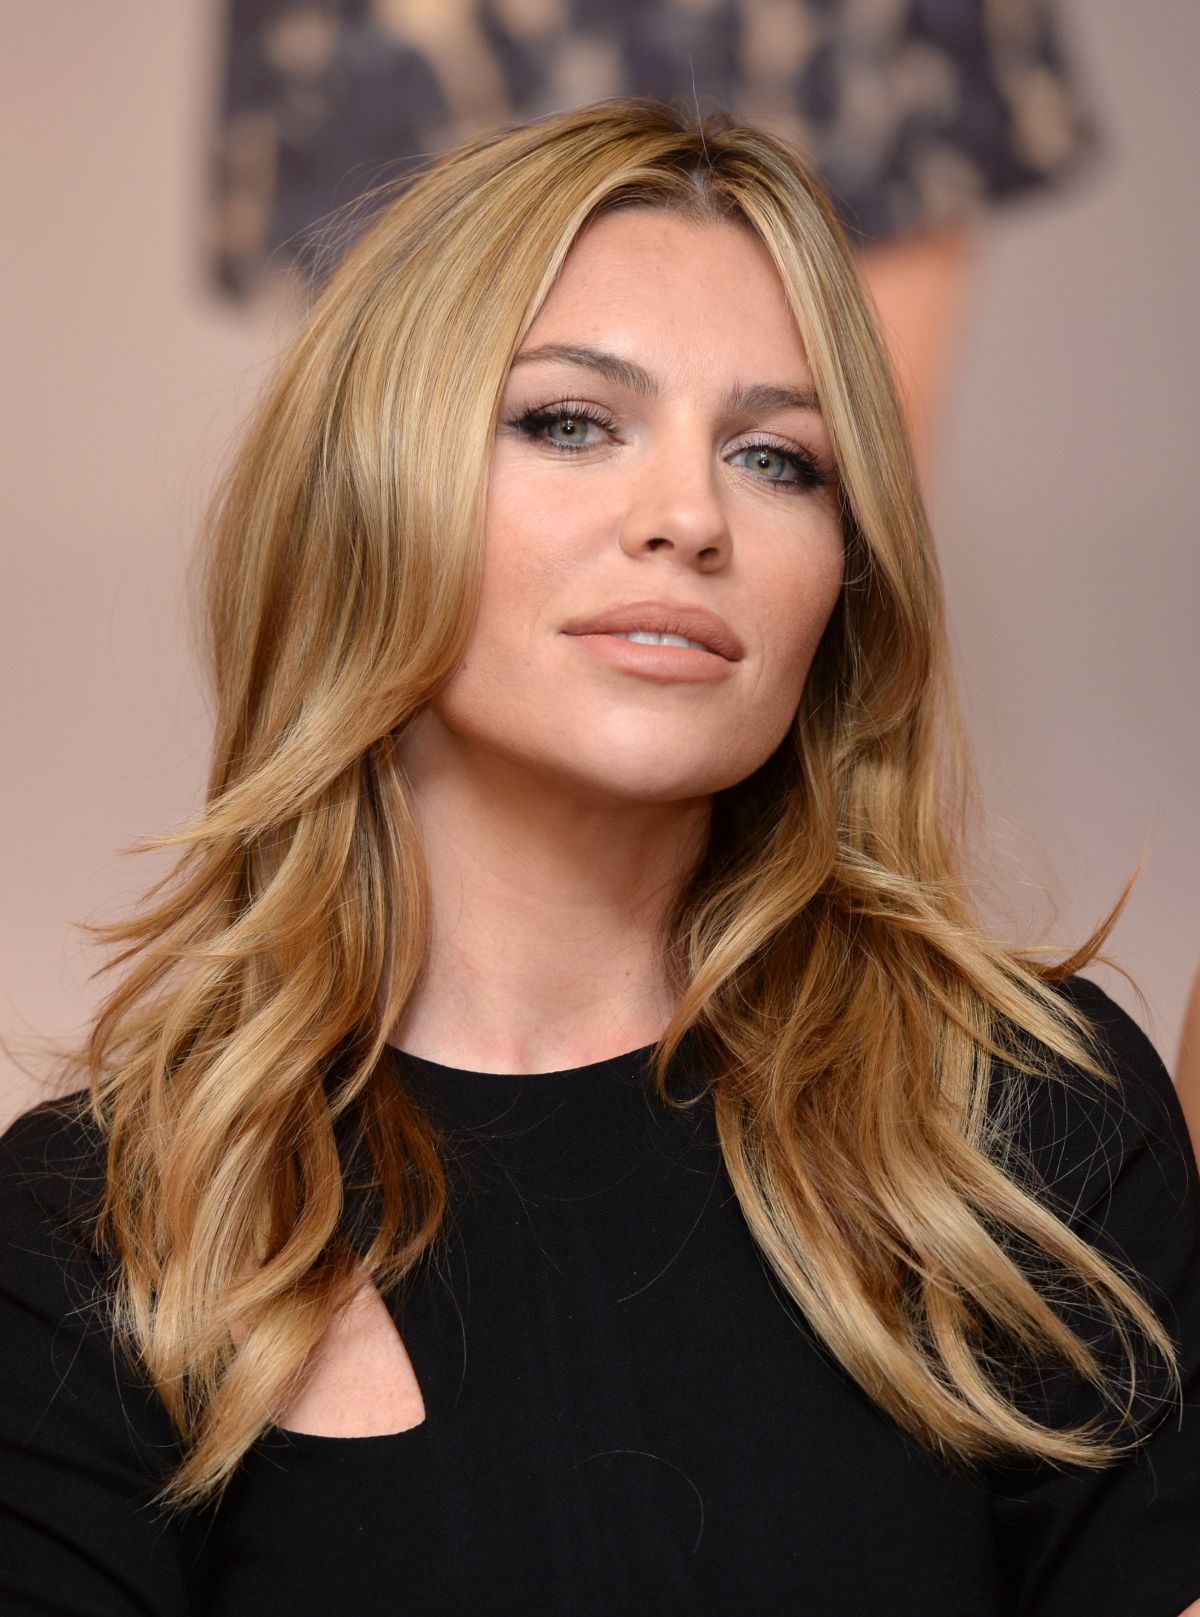 ABIGAIL ABBEY CLANCY at New Occasion Wear Collection for